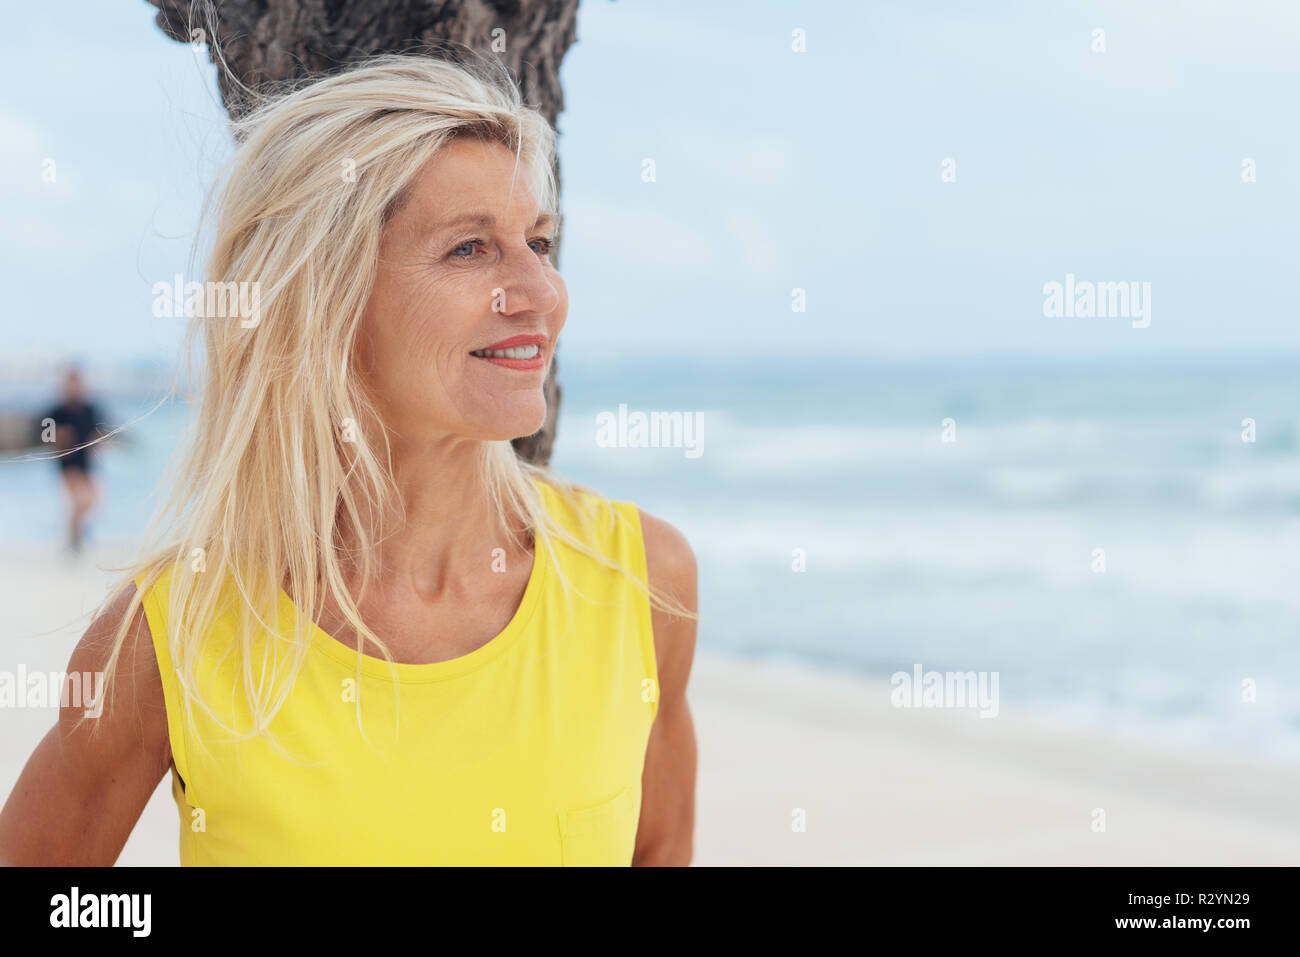 Attractive blond woman with her hair tousled by the sea breeze standing leaning against a tree enjoying a day at the seaside - Stock Image